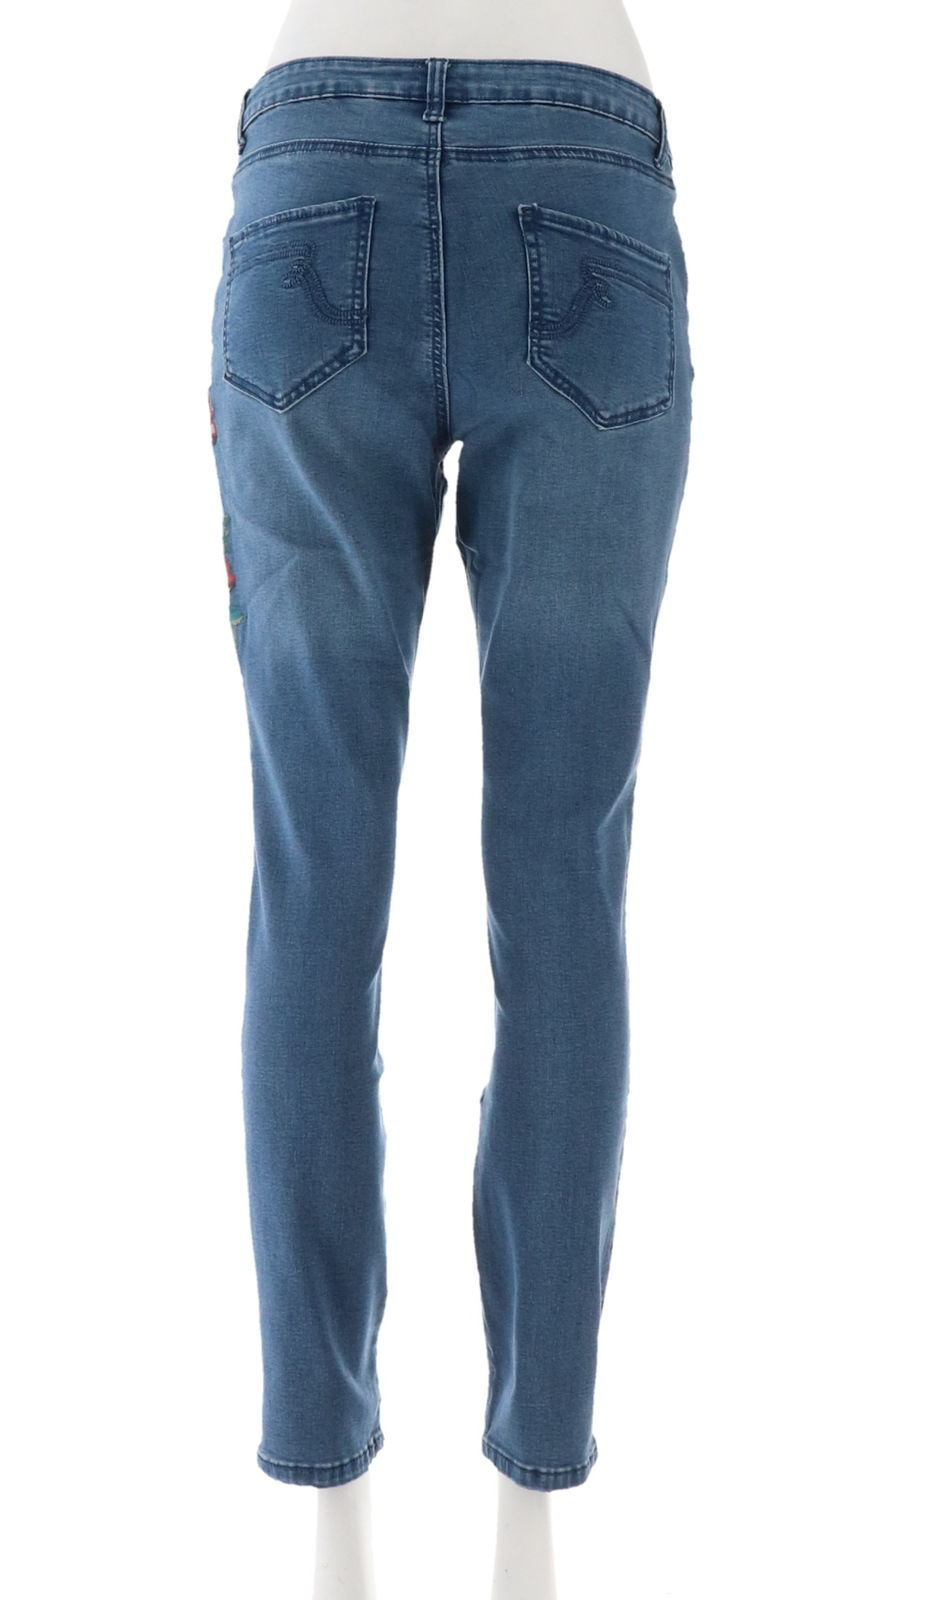 Women with Control My Wonder Denim Novelty Jeans Mid Blue 14 NEW A309509 image 3